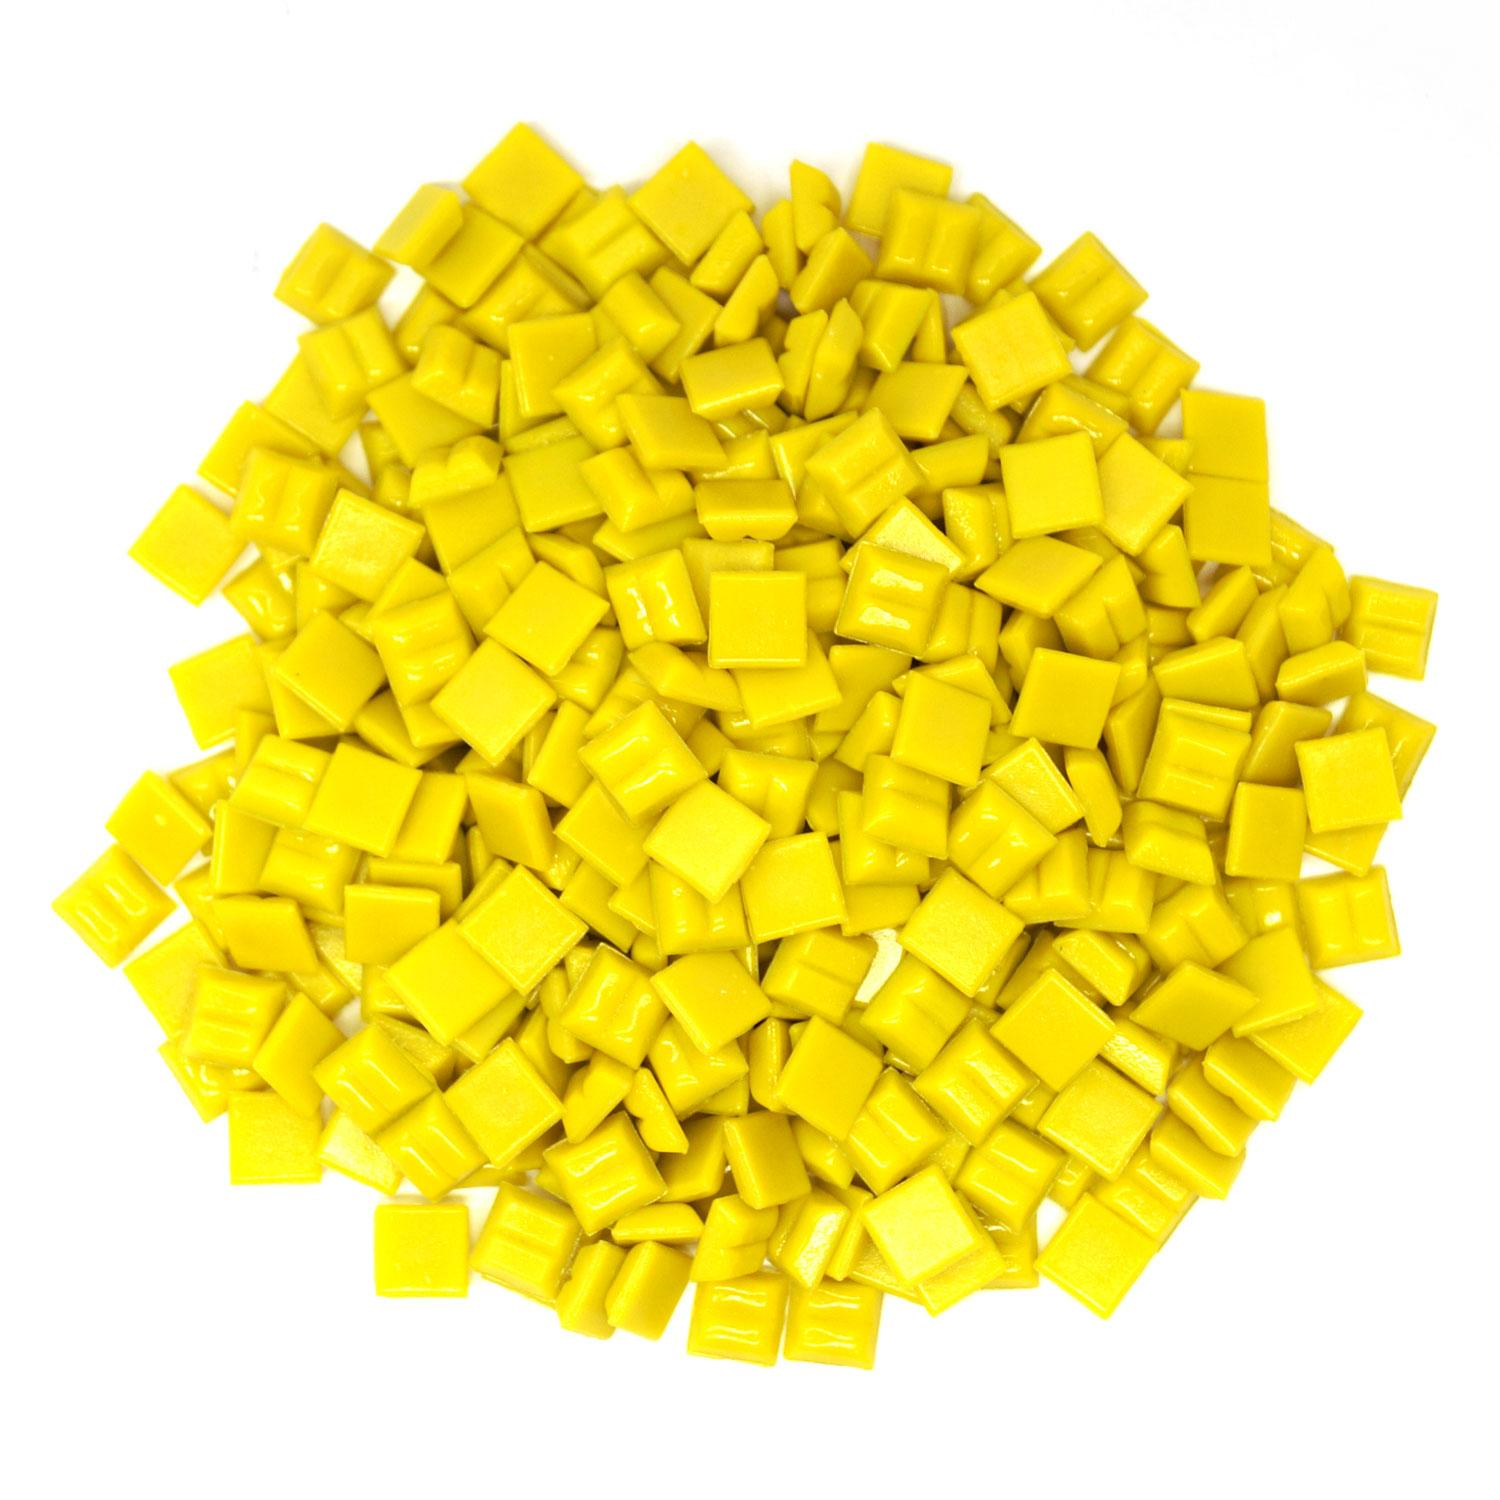 3/8 Canary Glass Tile - 1 lb